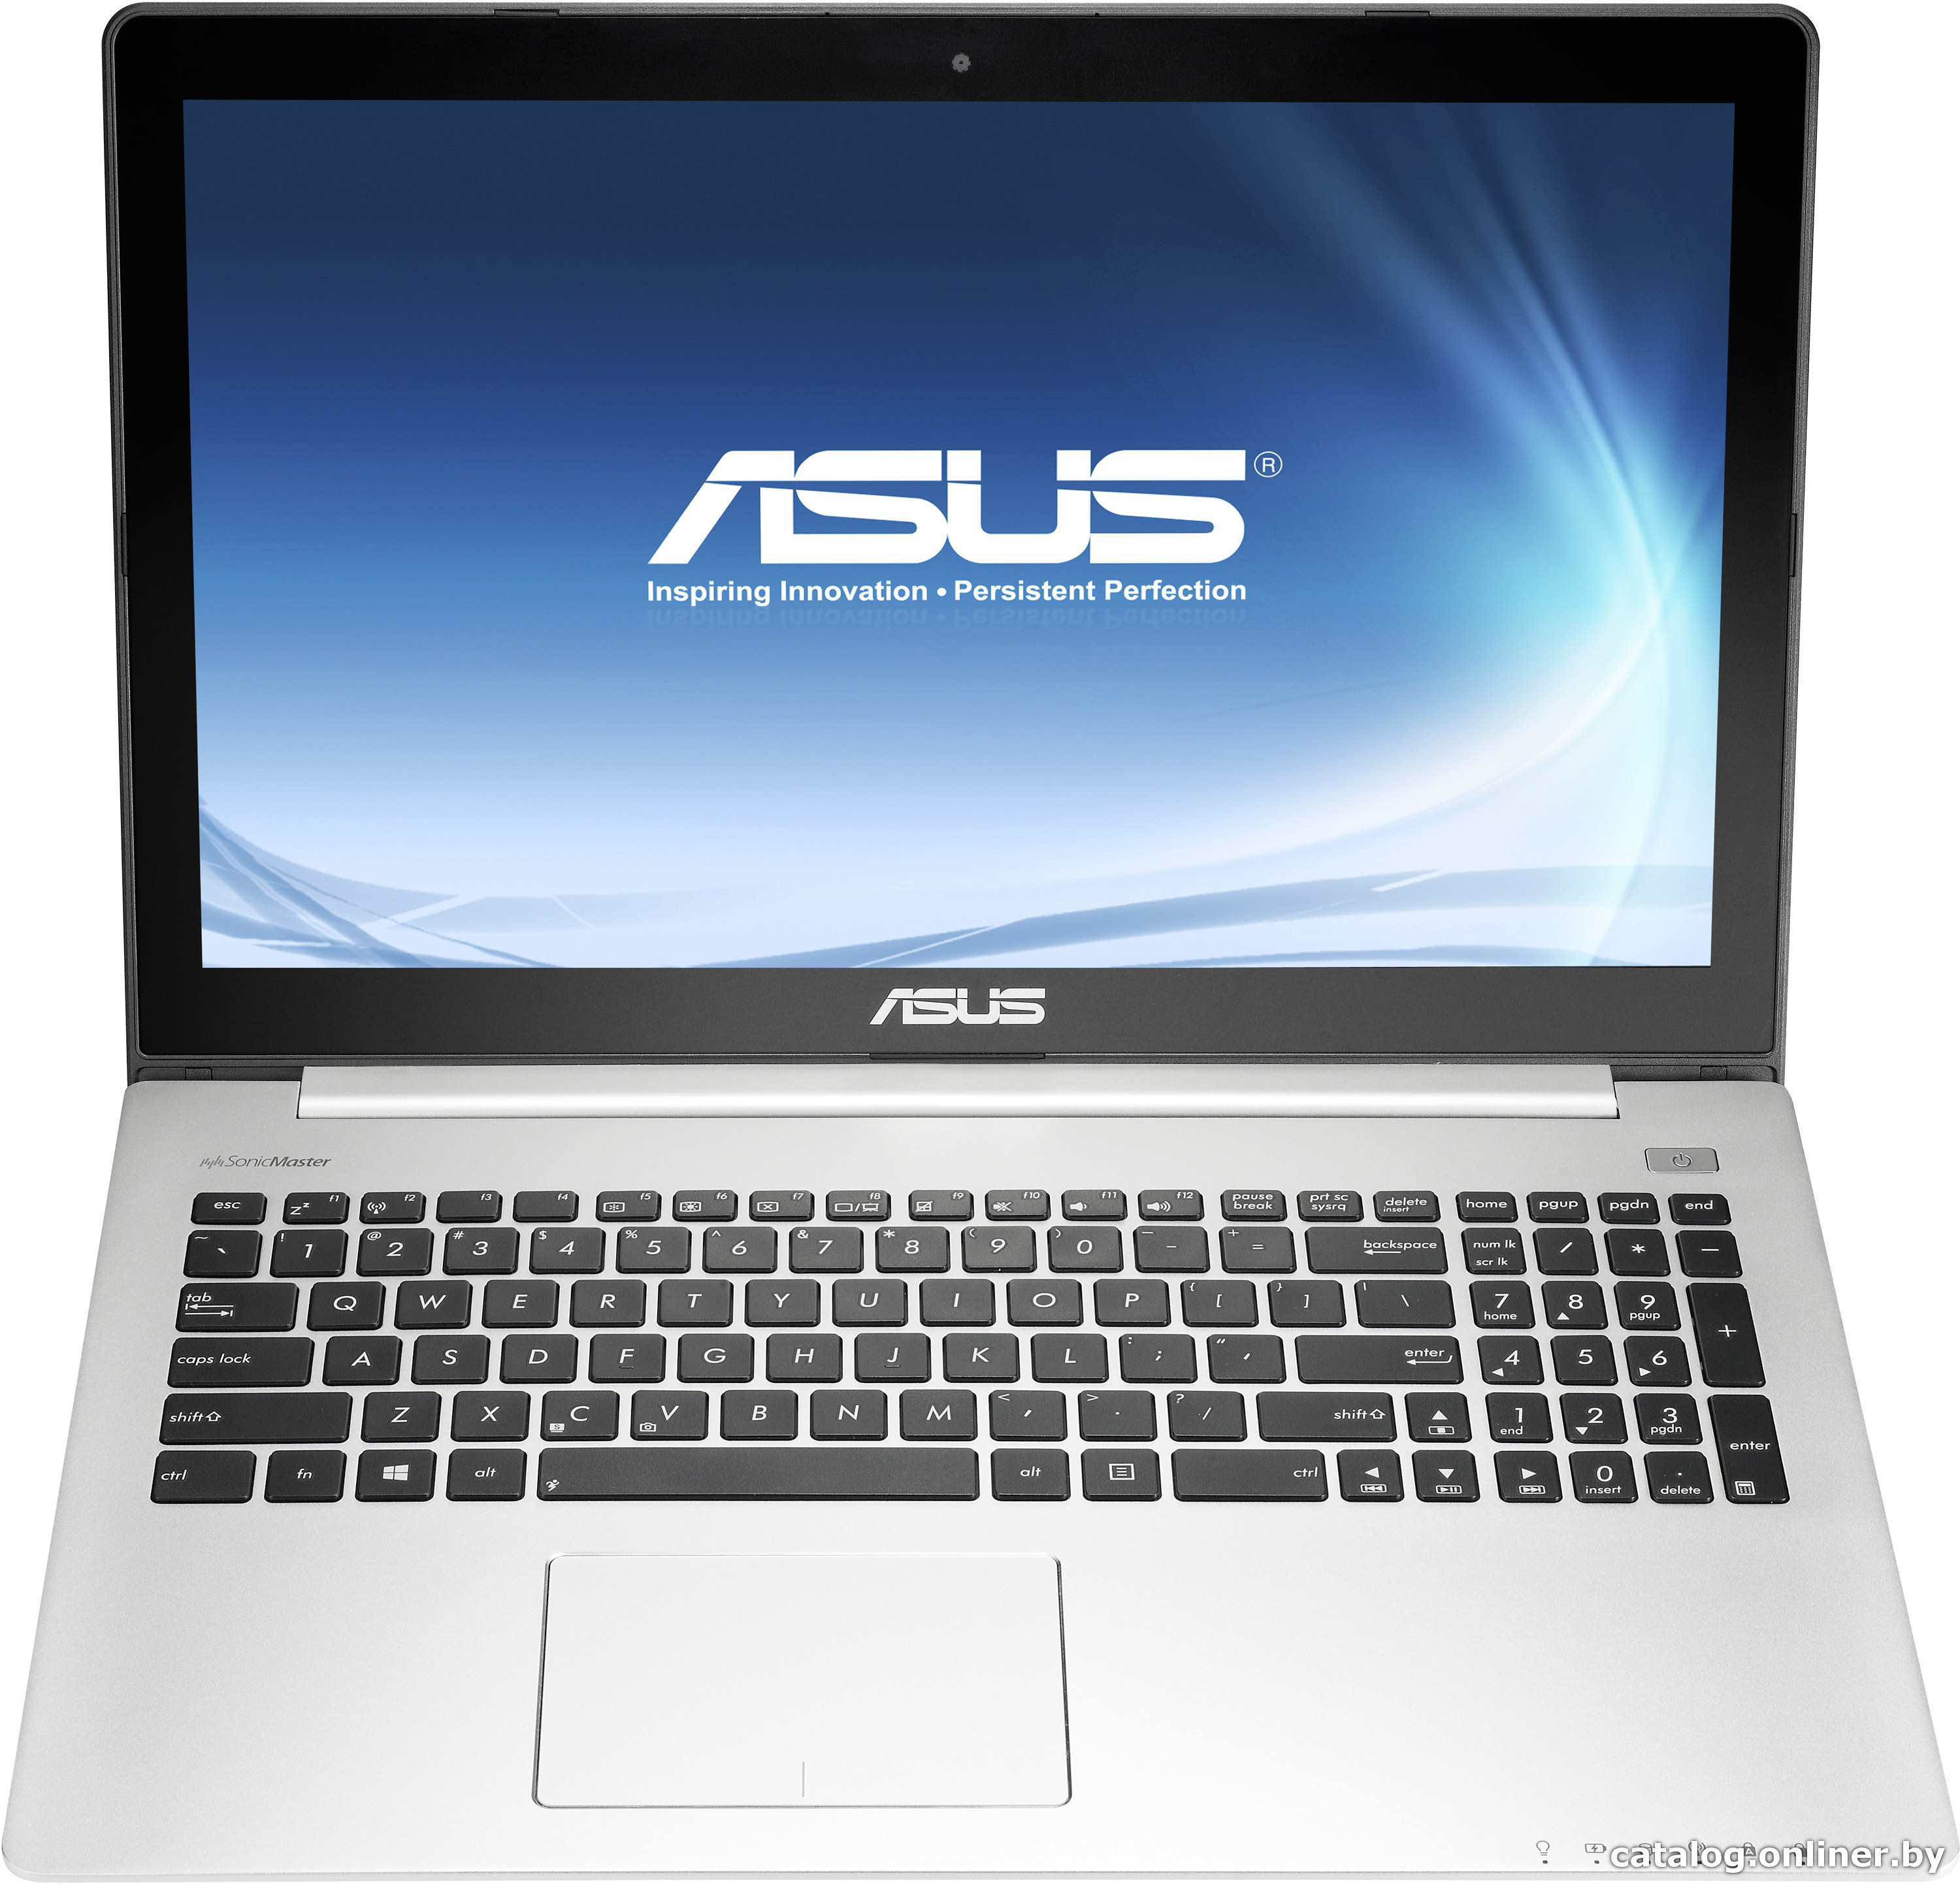 ASUS VIVOBOOK S500CA KEYBOARD DEVICE FILTER DRIVER FOR WINDOWS 10